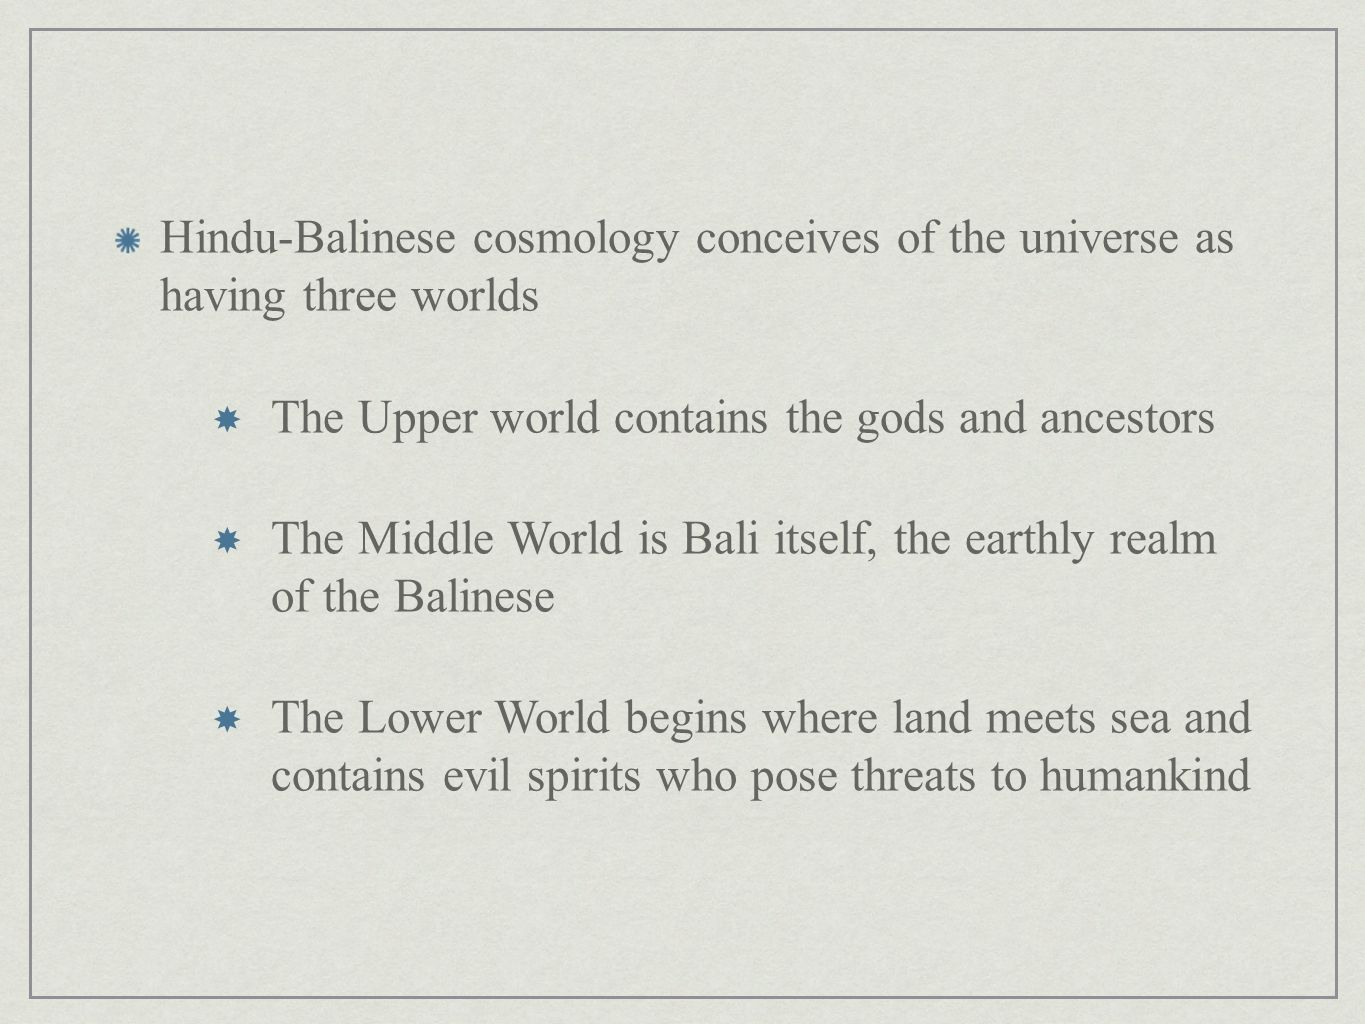 Hindu-Balinese cosmology conceives of the universe as having three worlds